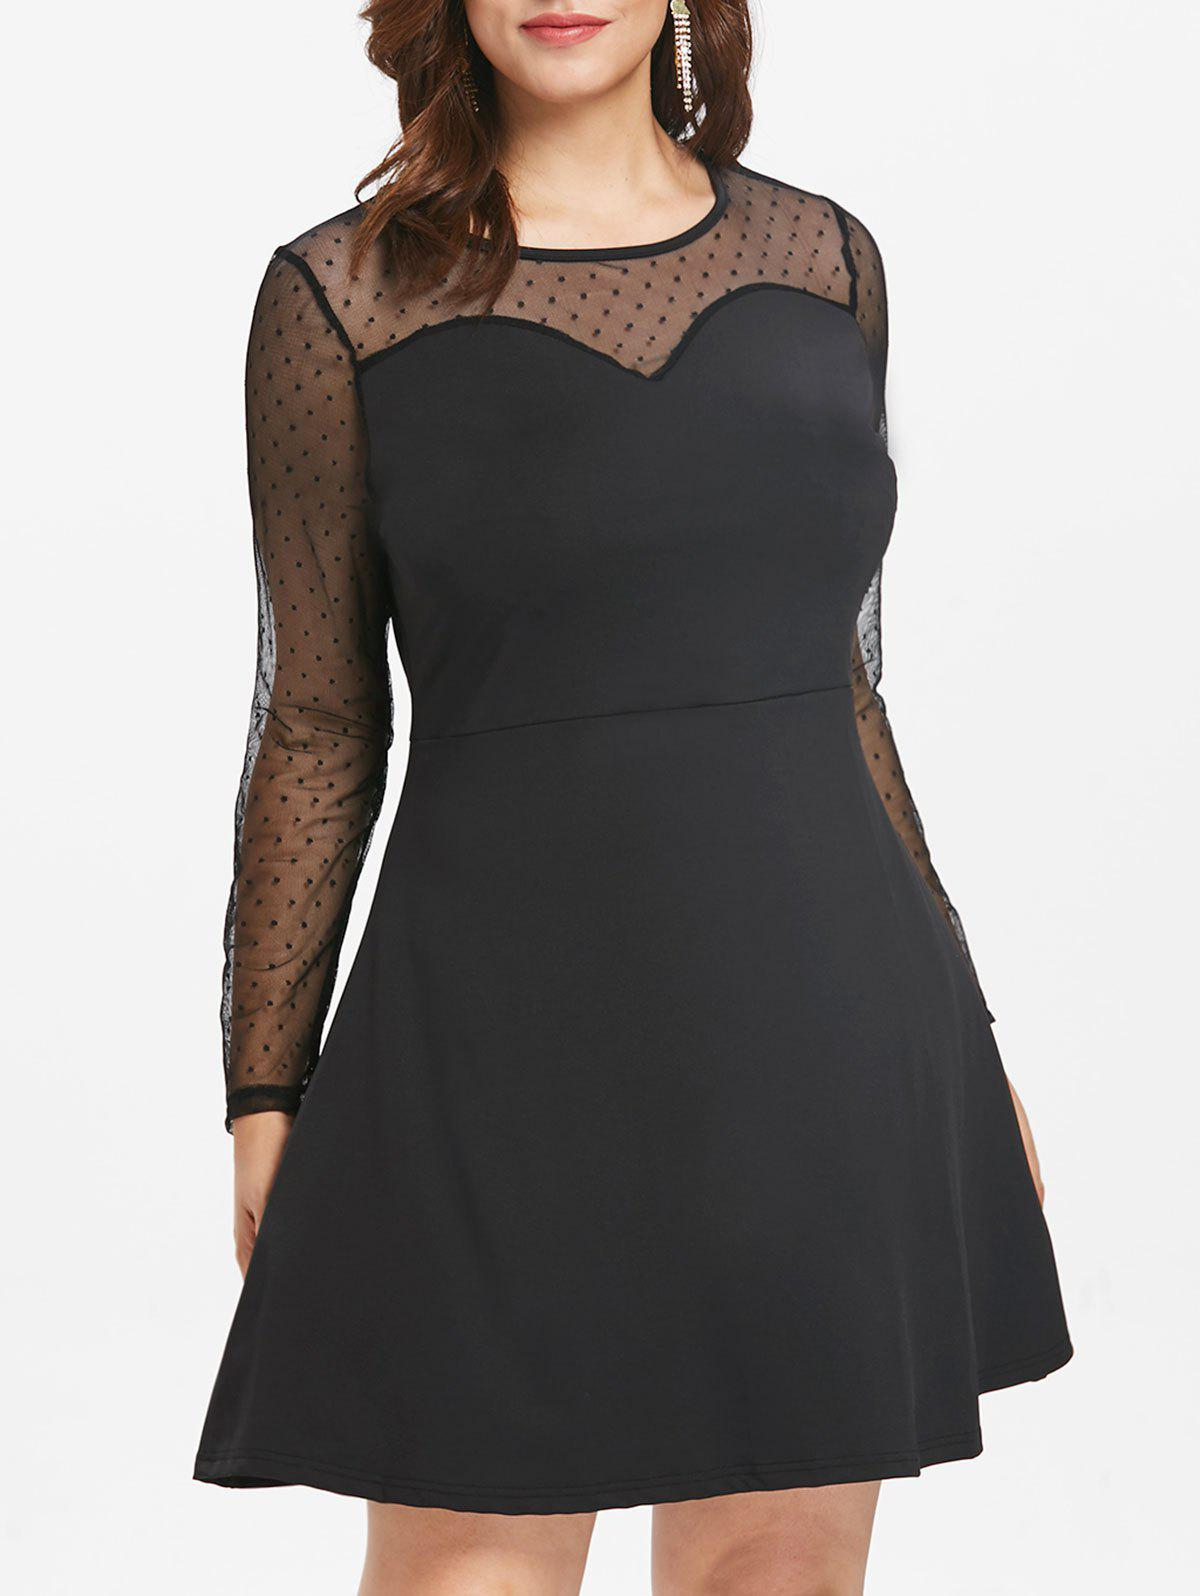 Chic Plus Size Mesh Polka Dot Dress